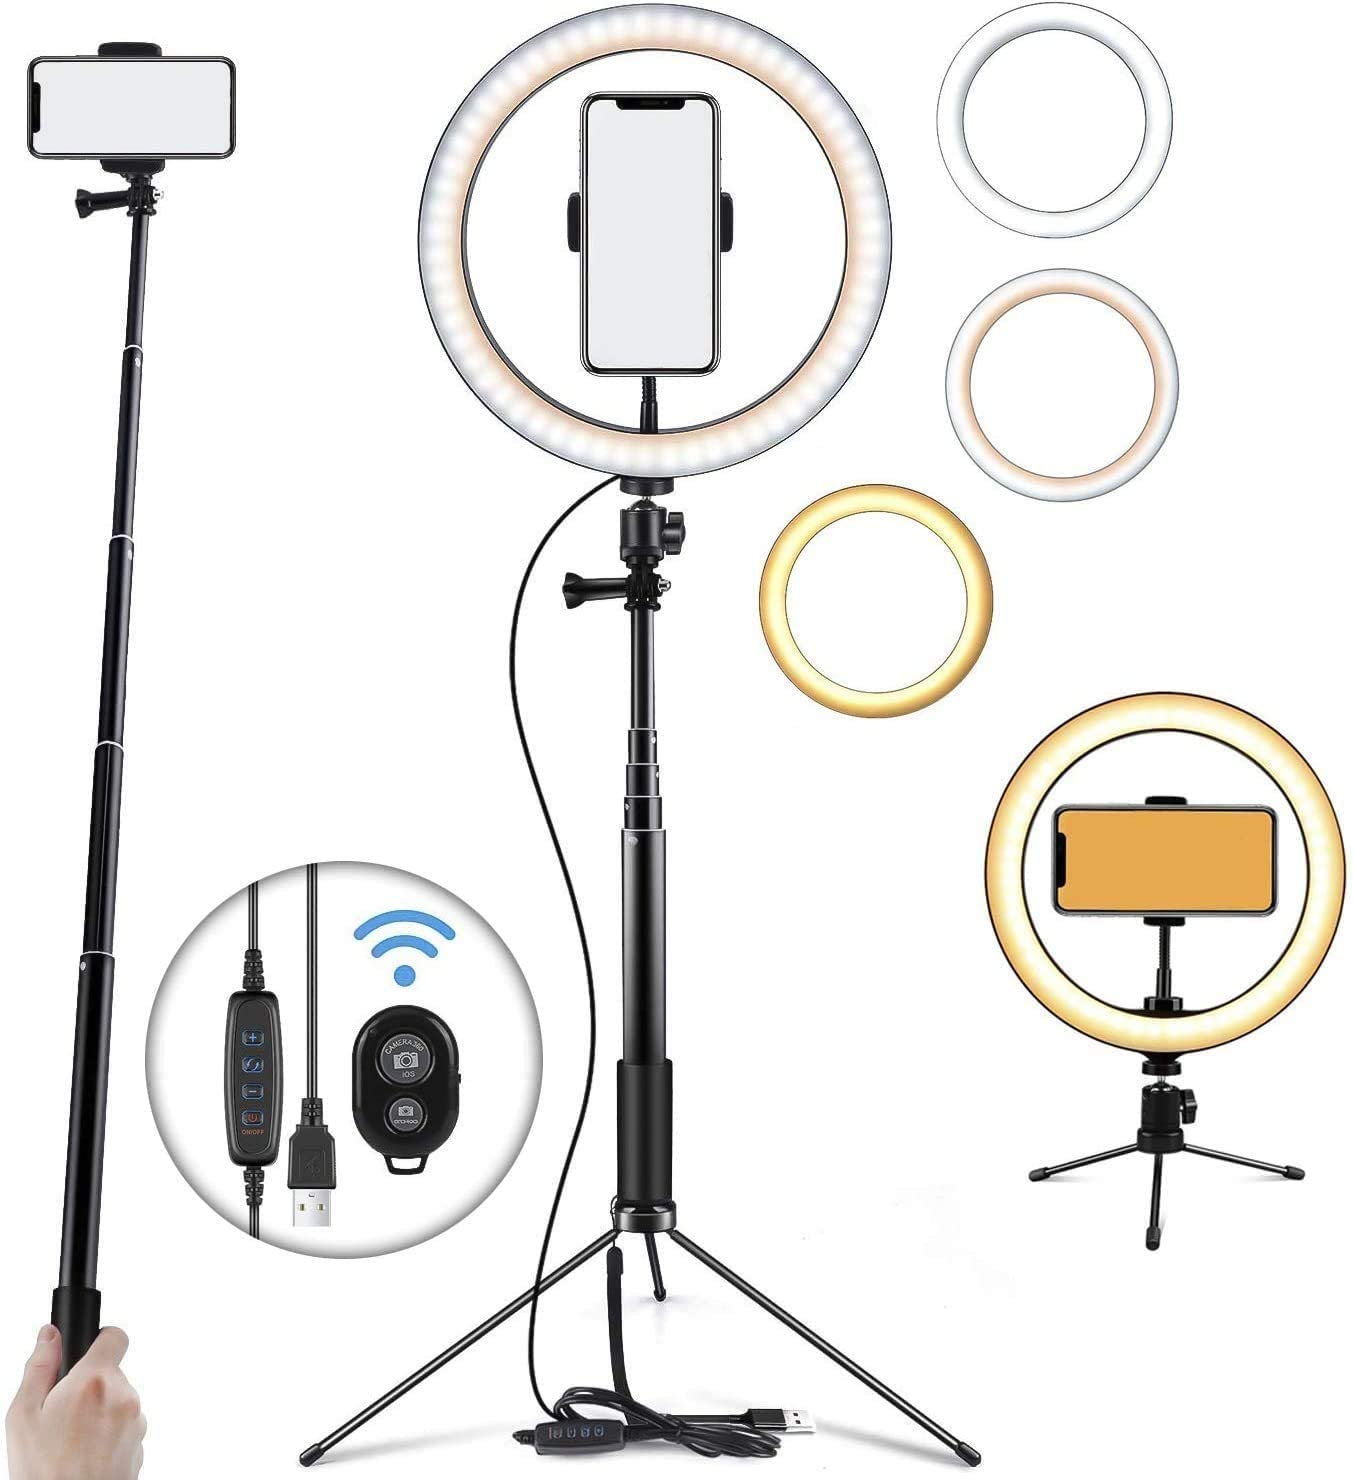 """Nlisse 10"""" Mini Selfie Ring Light Led Camera Ringlight with Adjustable Brightness Adjustable Tripod Stand for Video Photography Makeup Live Streaming"""